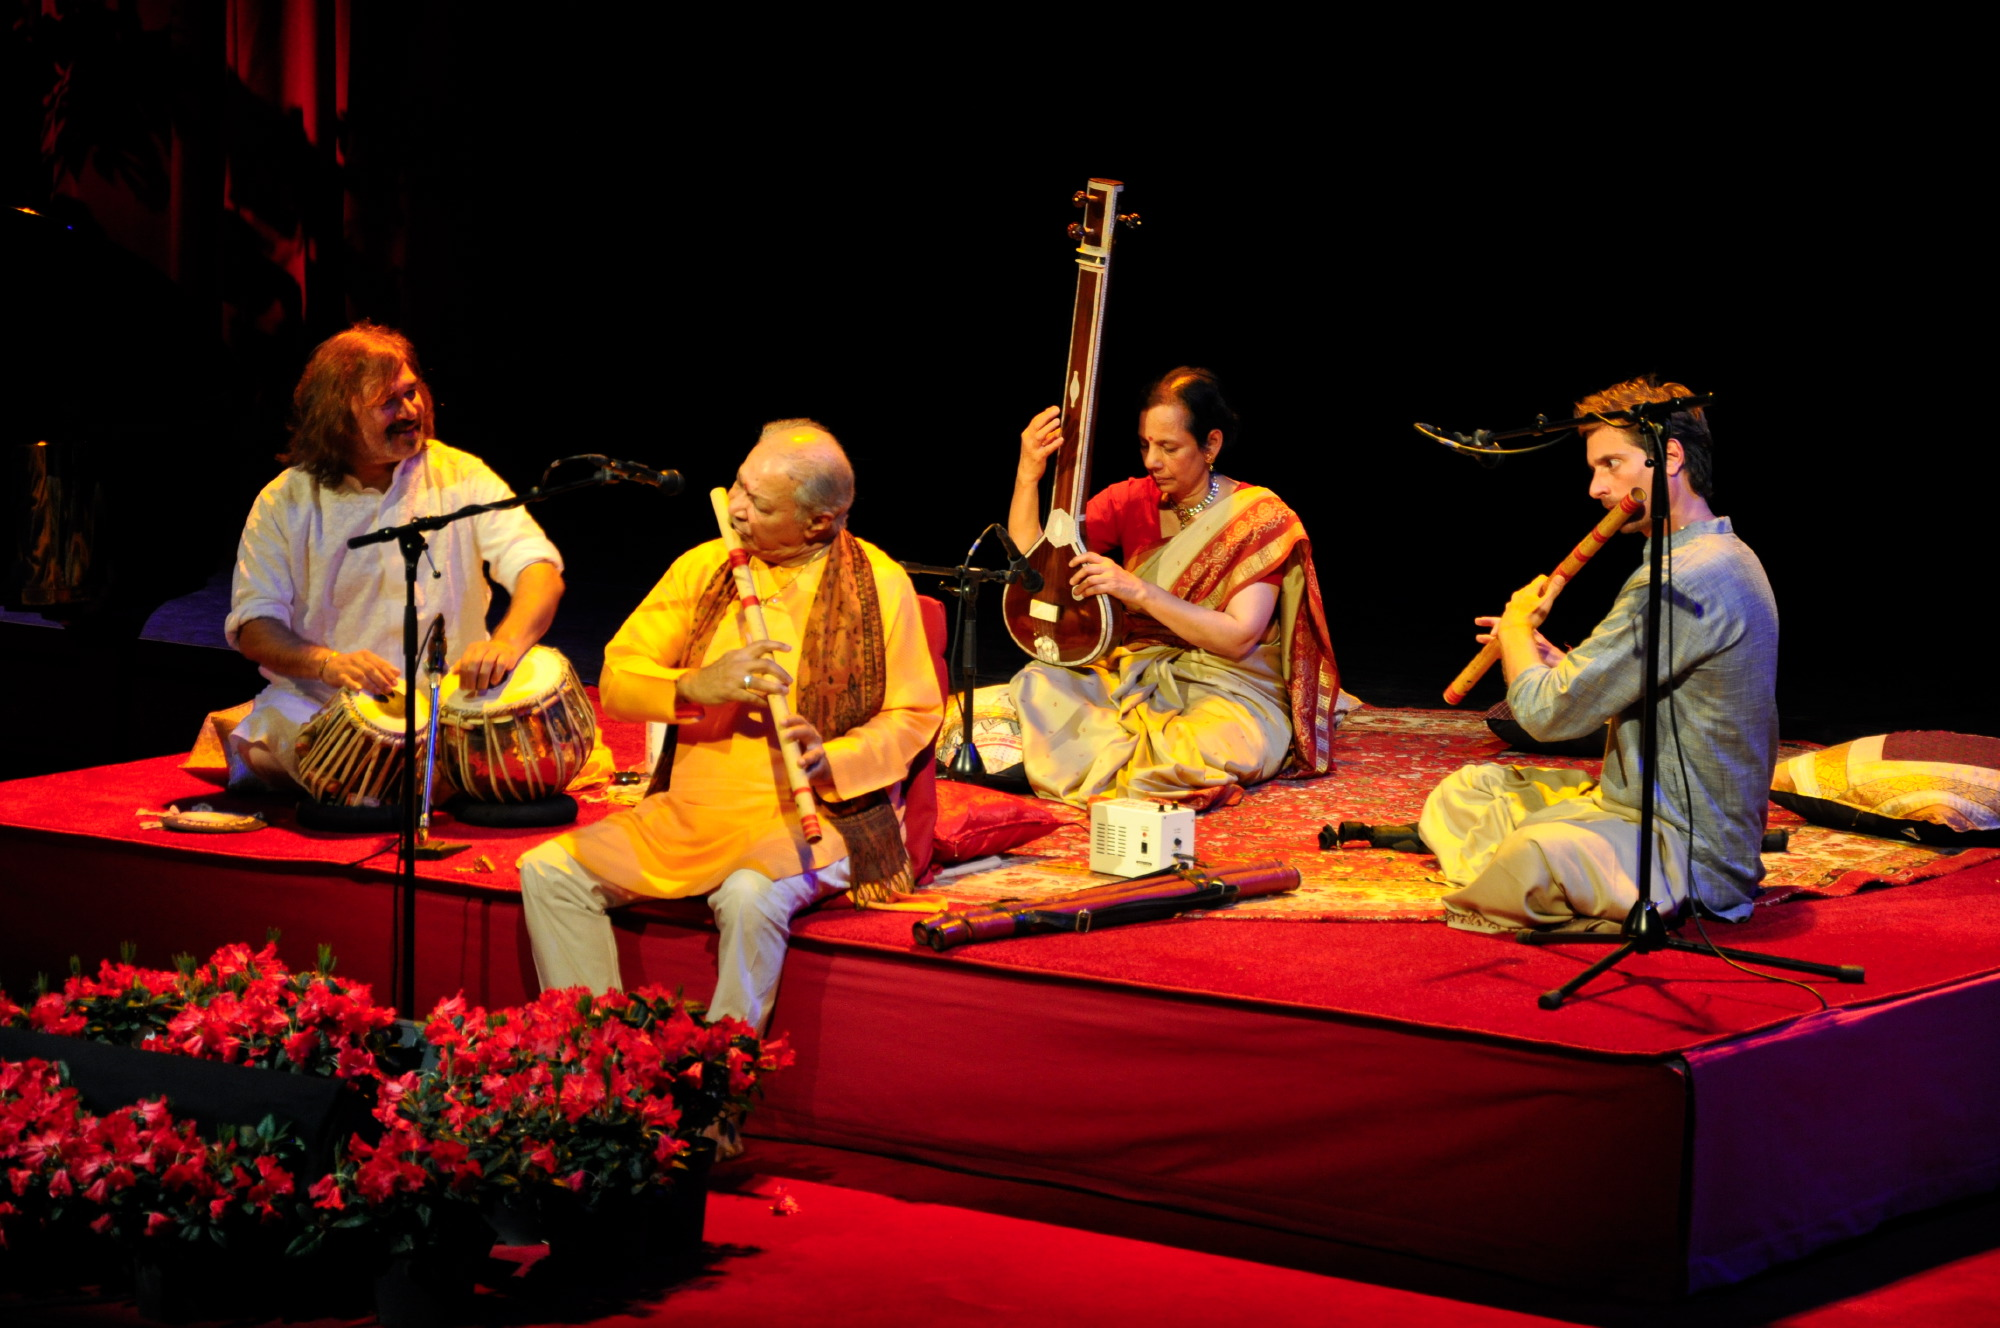 IMPACT OF GLOBALIZATION ON INDIAN CLASSICAL MUSIC